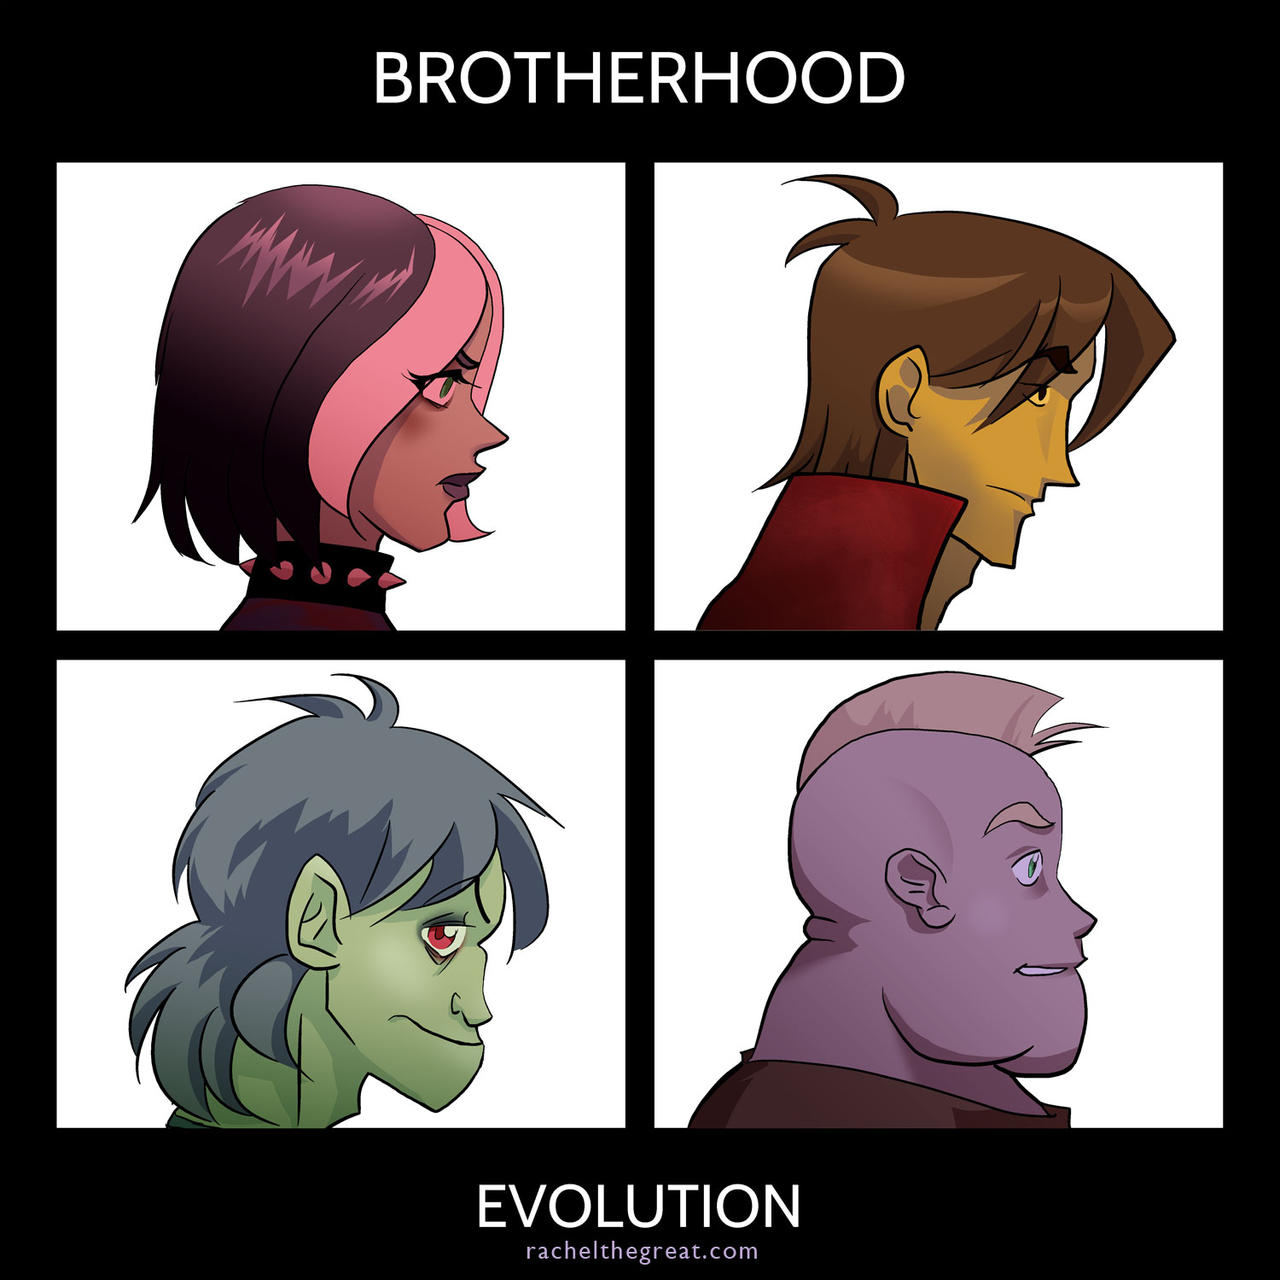 Evolution Album Art by rachelthegreat